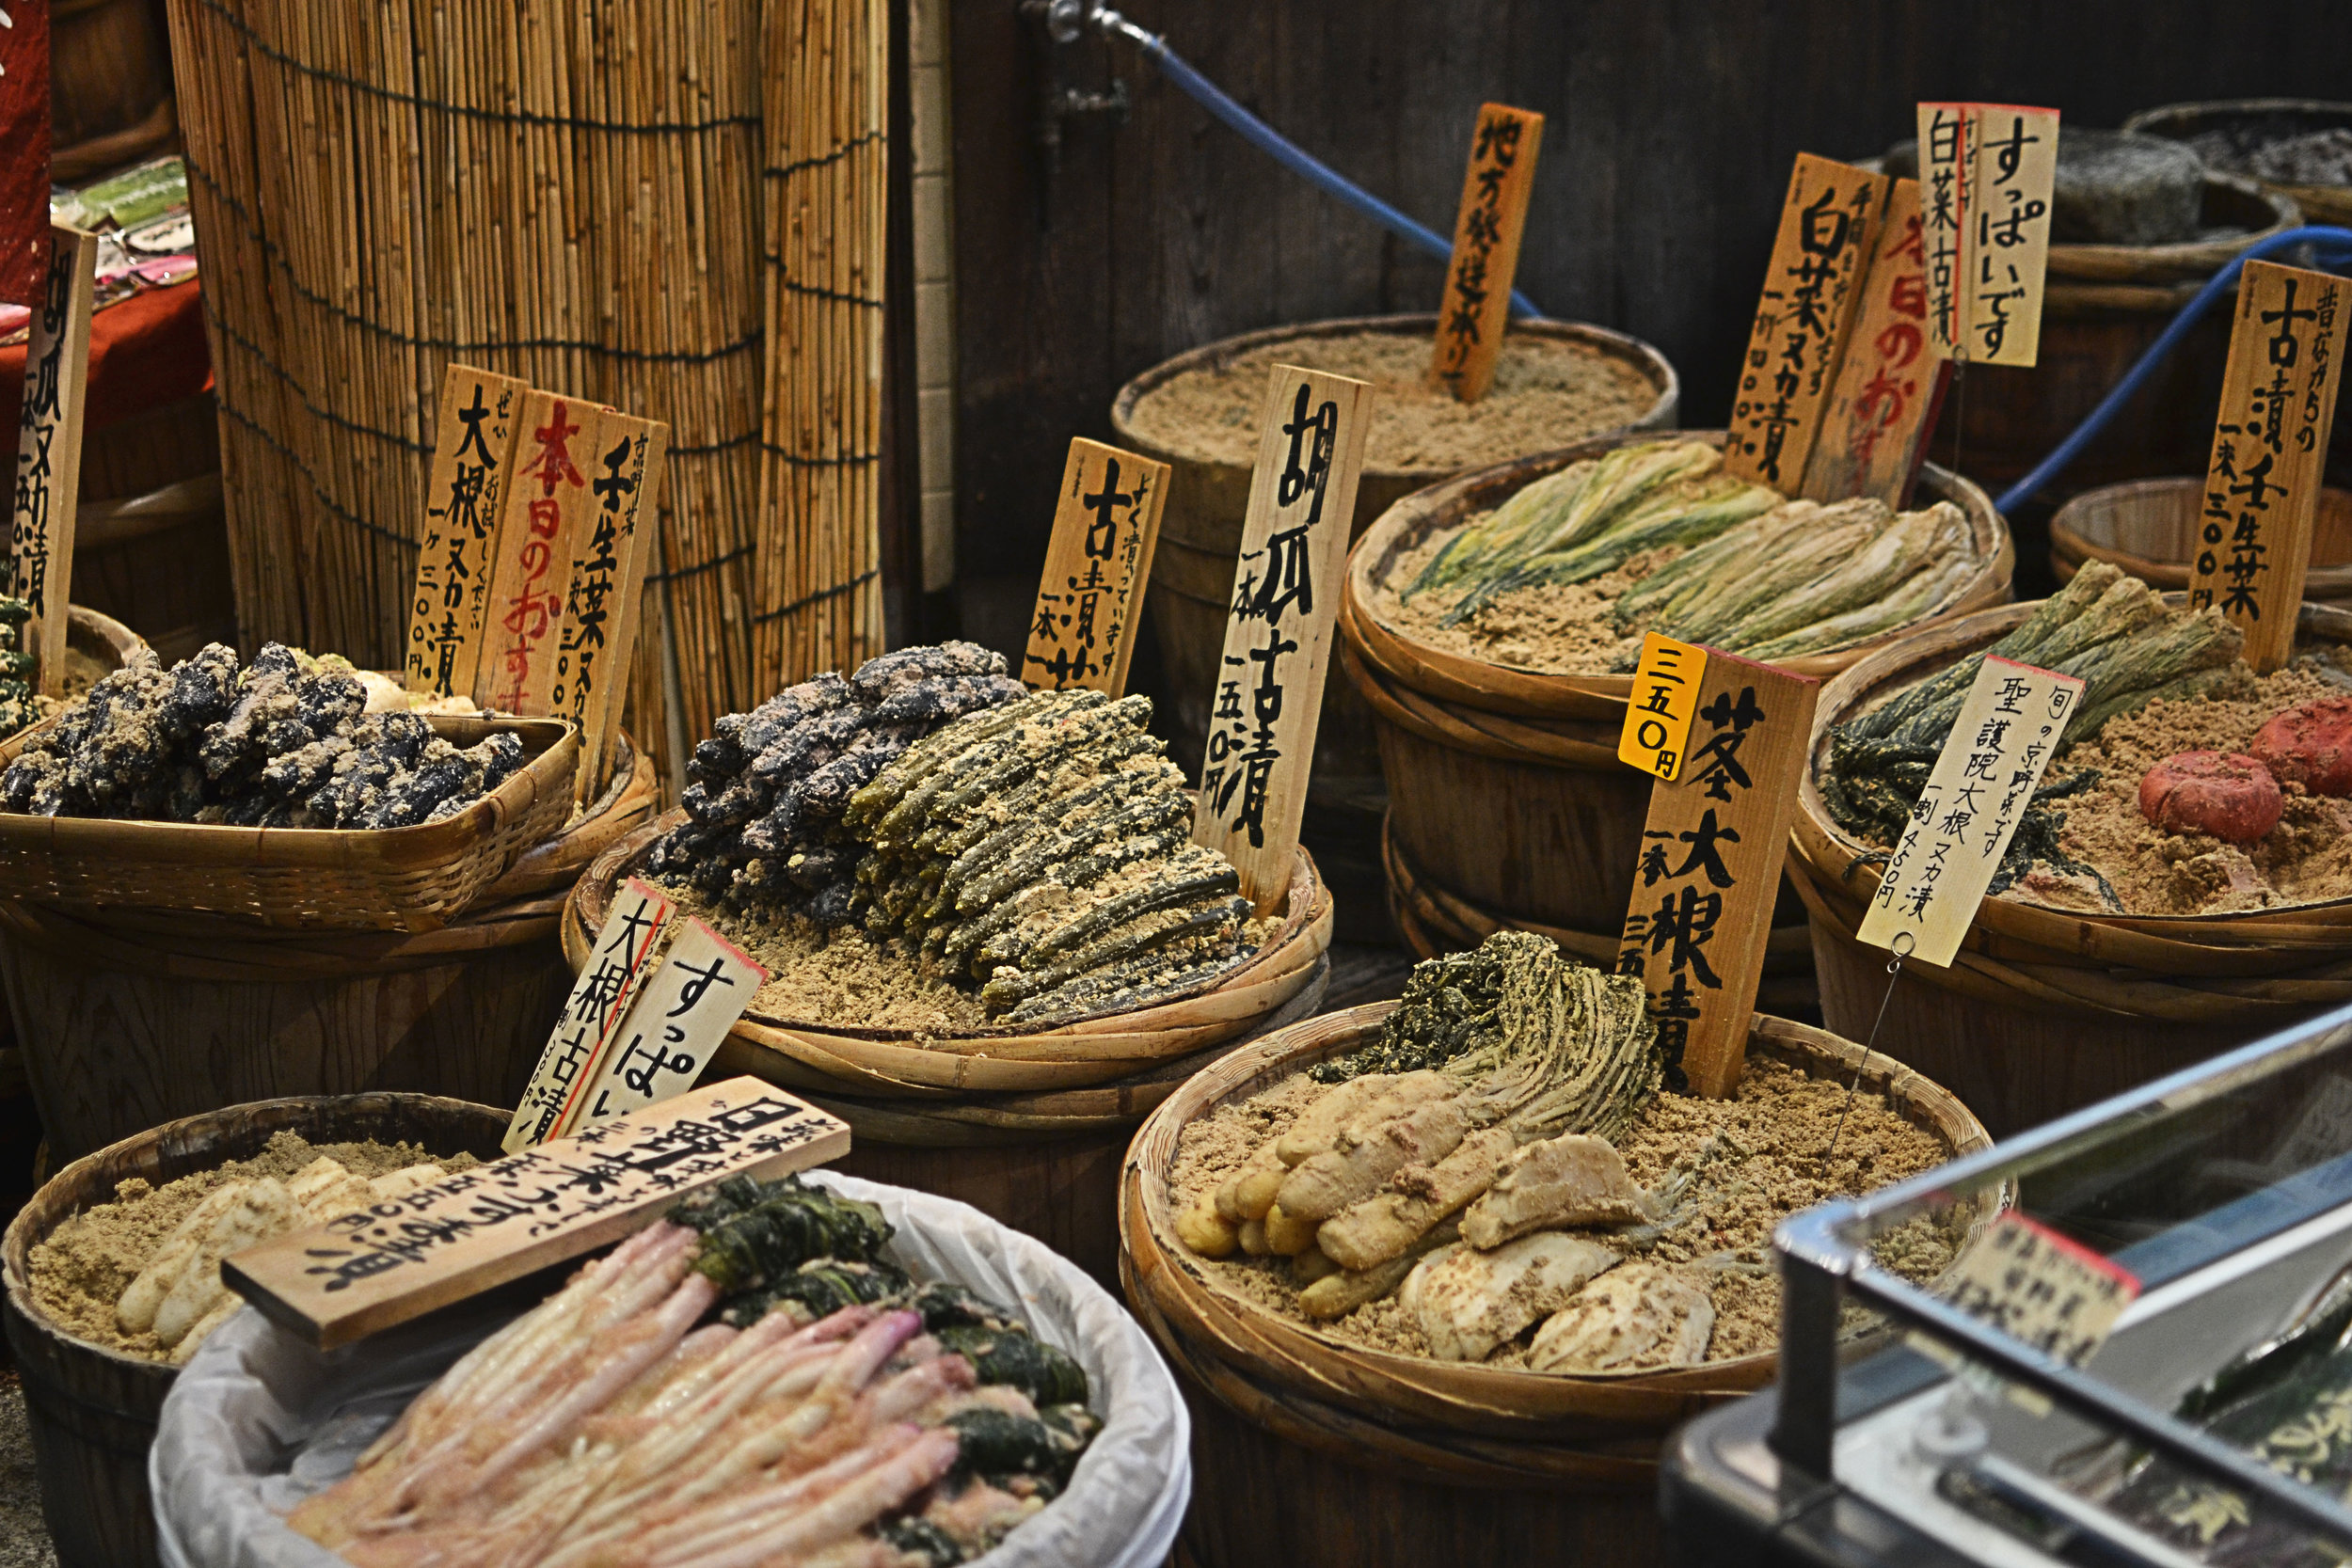 Japanese pickles for sale